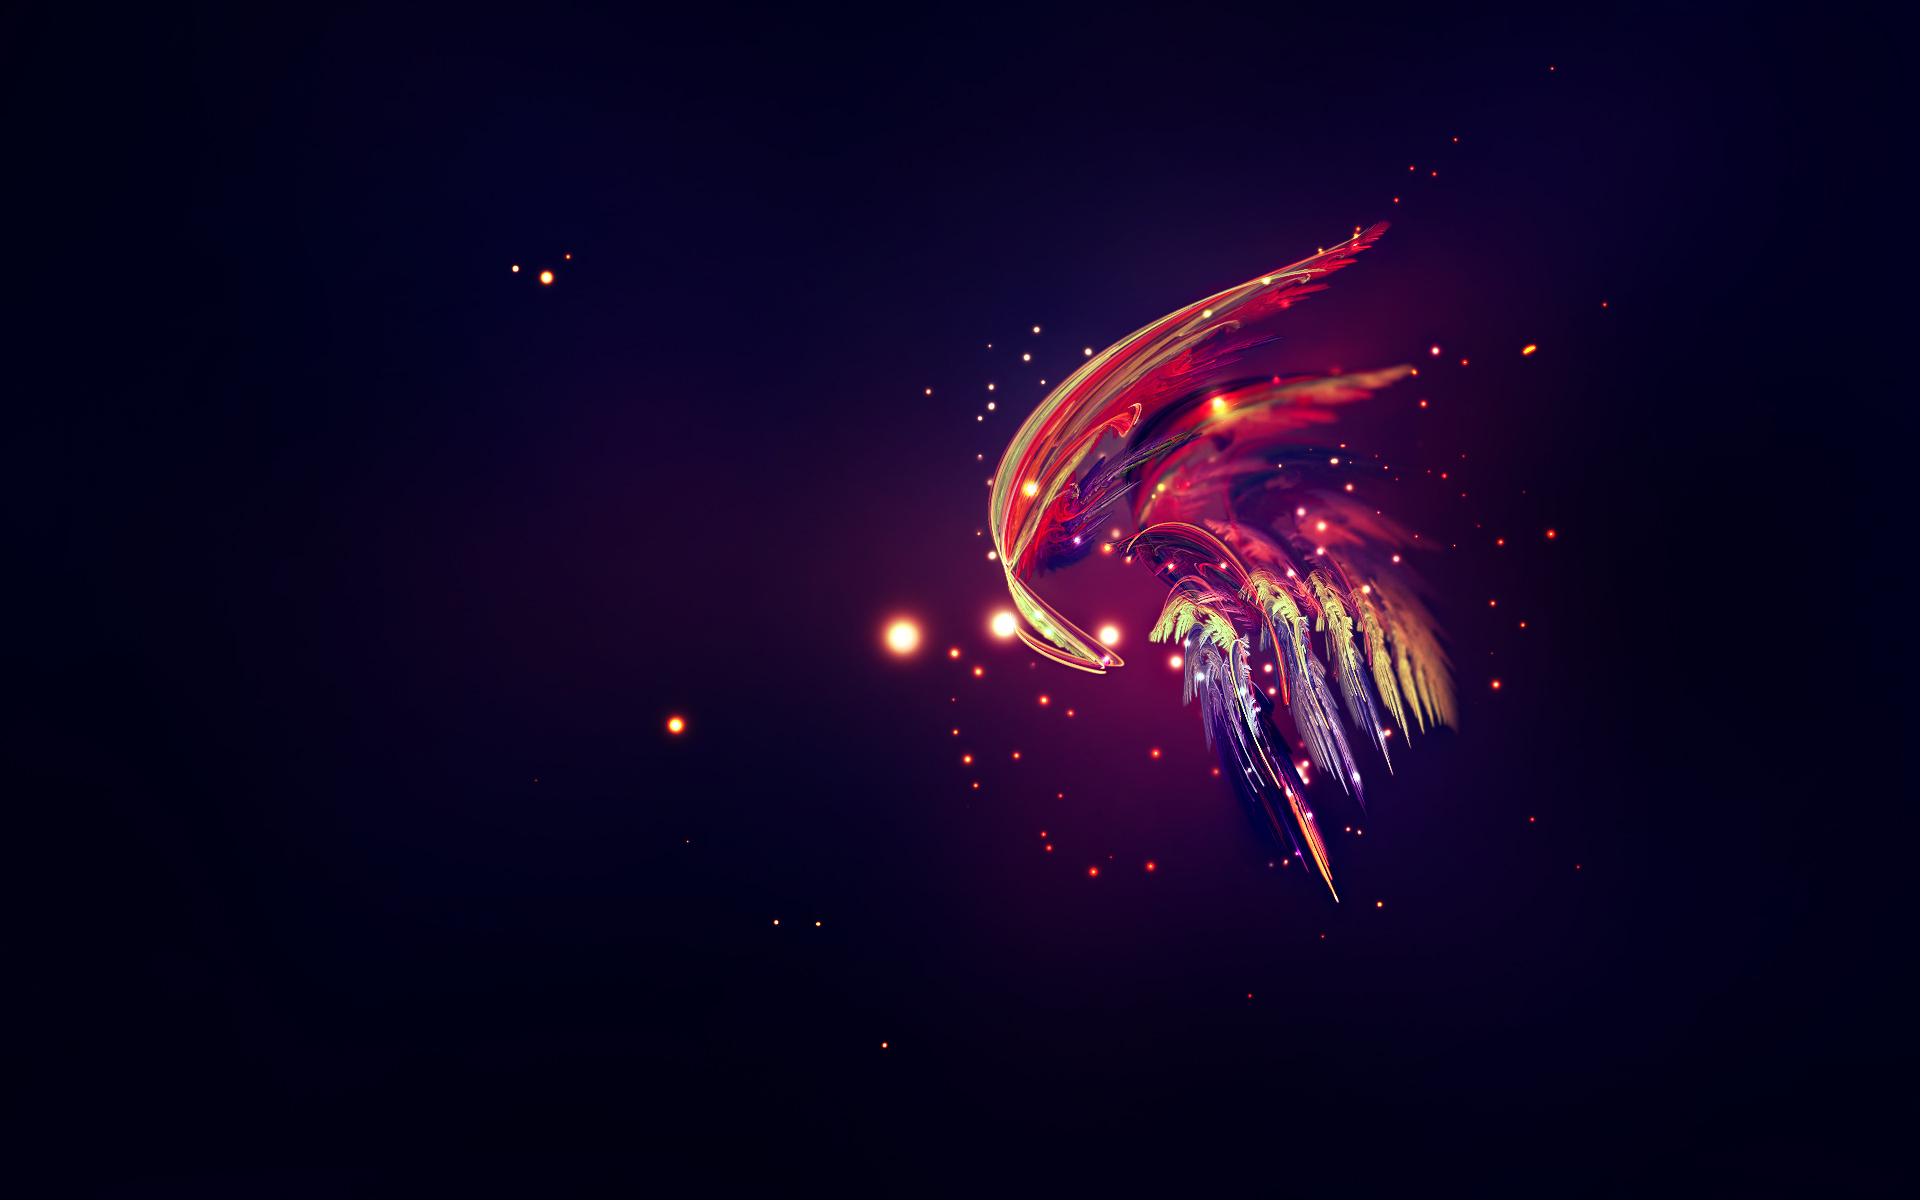 Download the Feather Fluorescence Wallpaper Feather Fluorescence 1920x1200